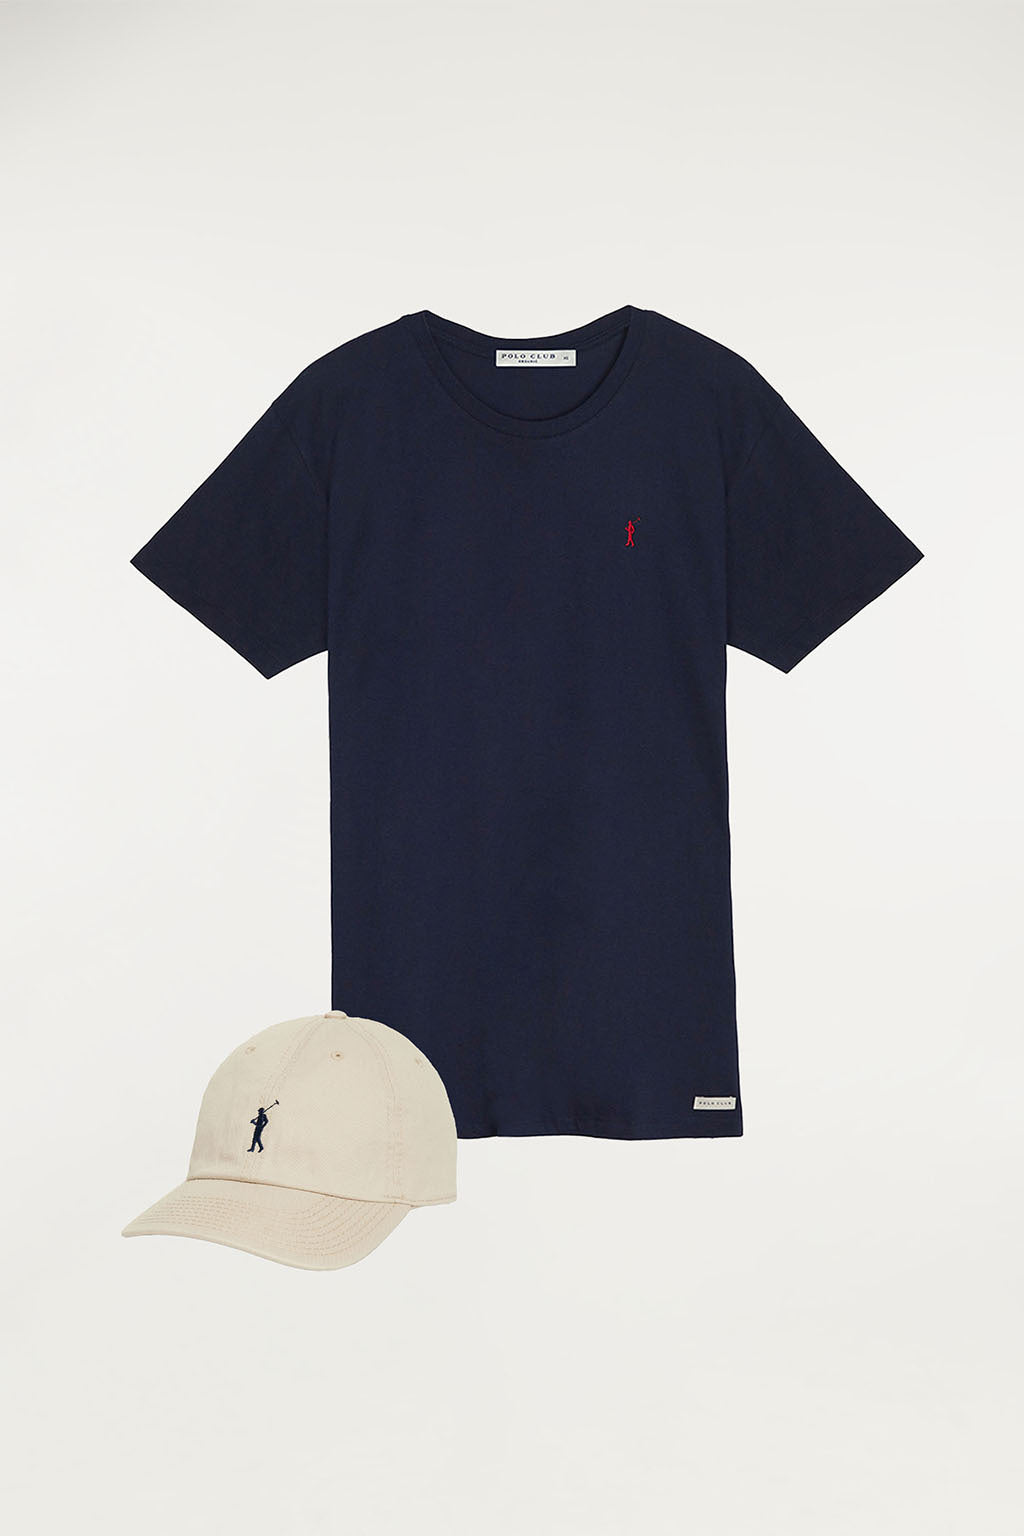 Organic tee and cap with embroidered logo pack